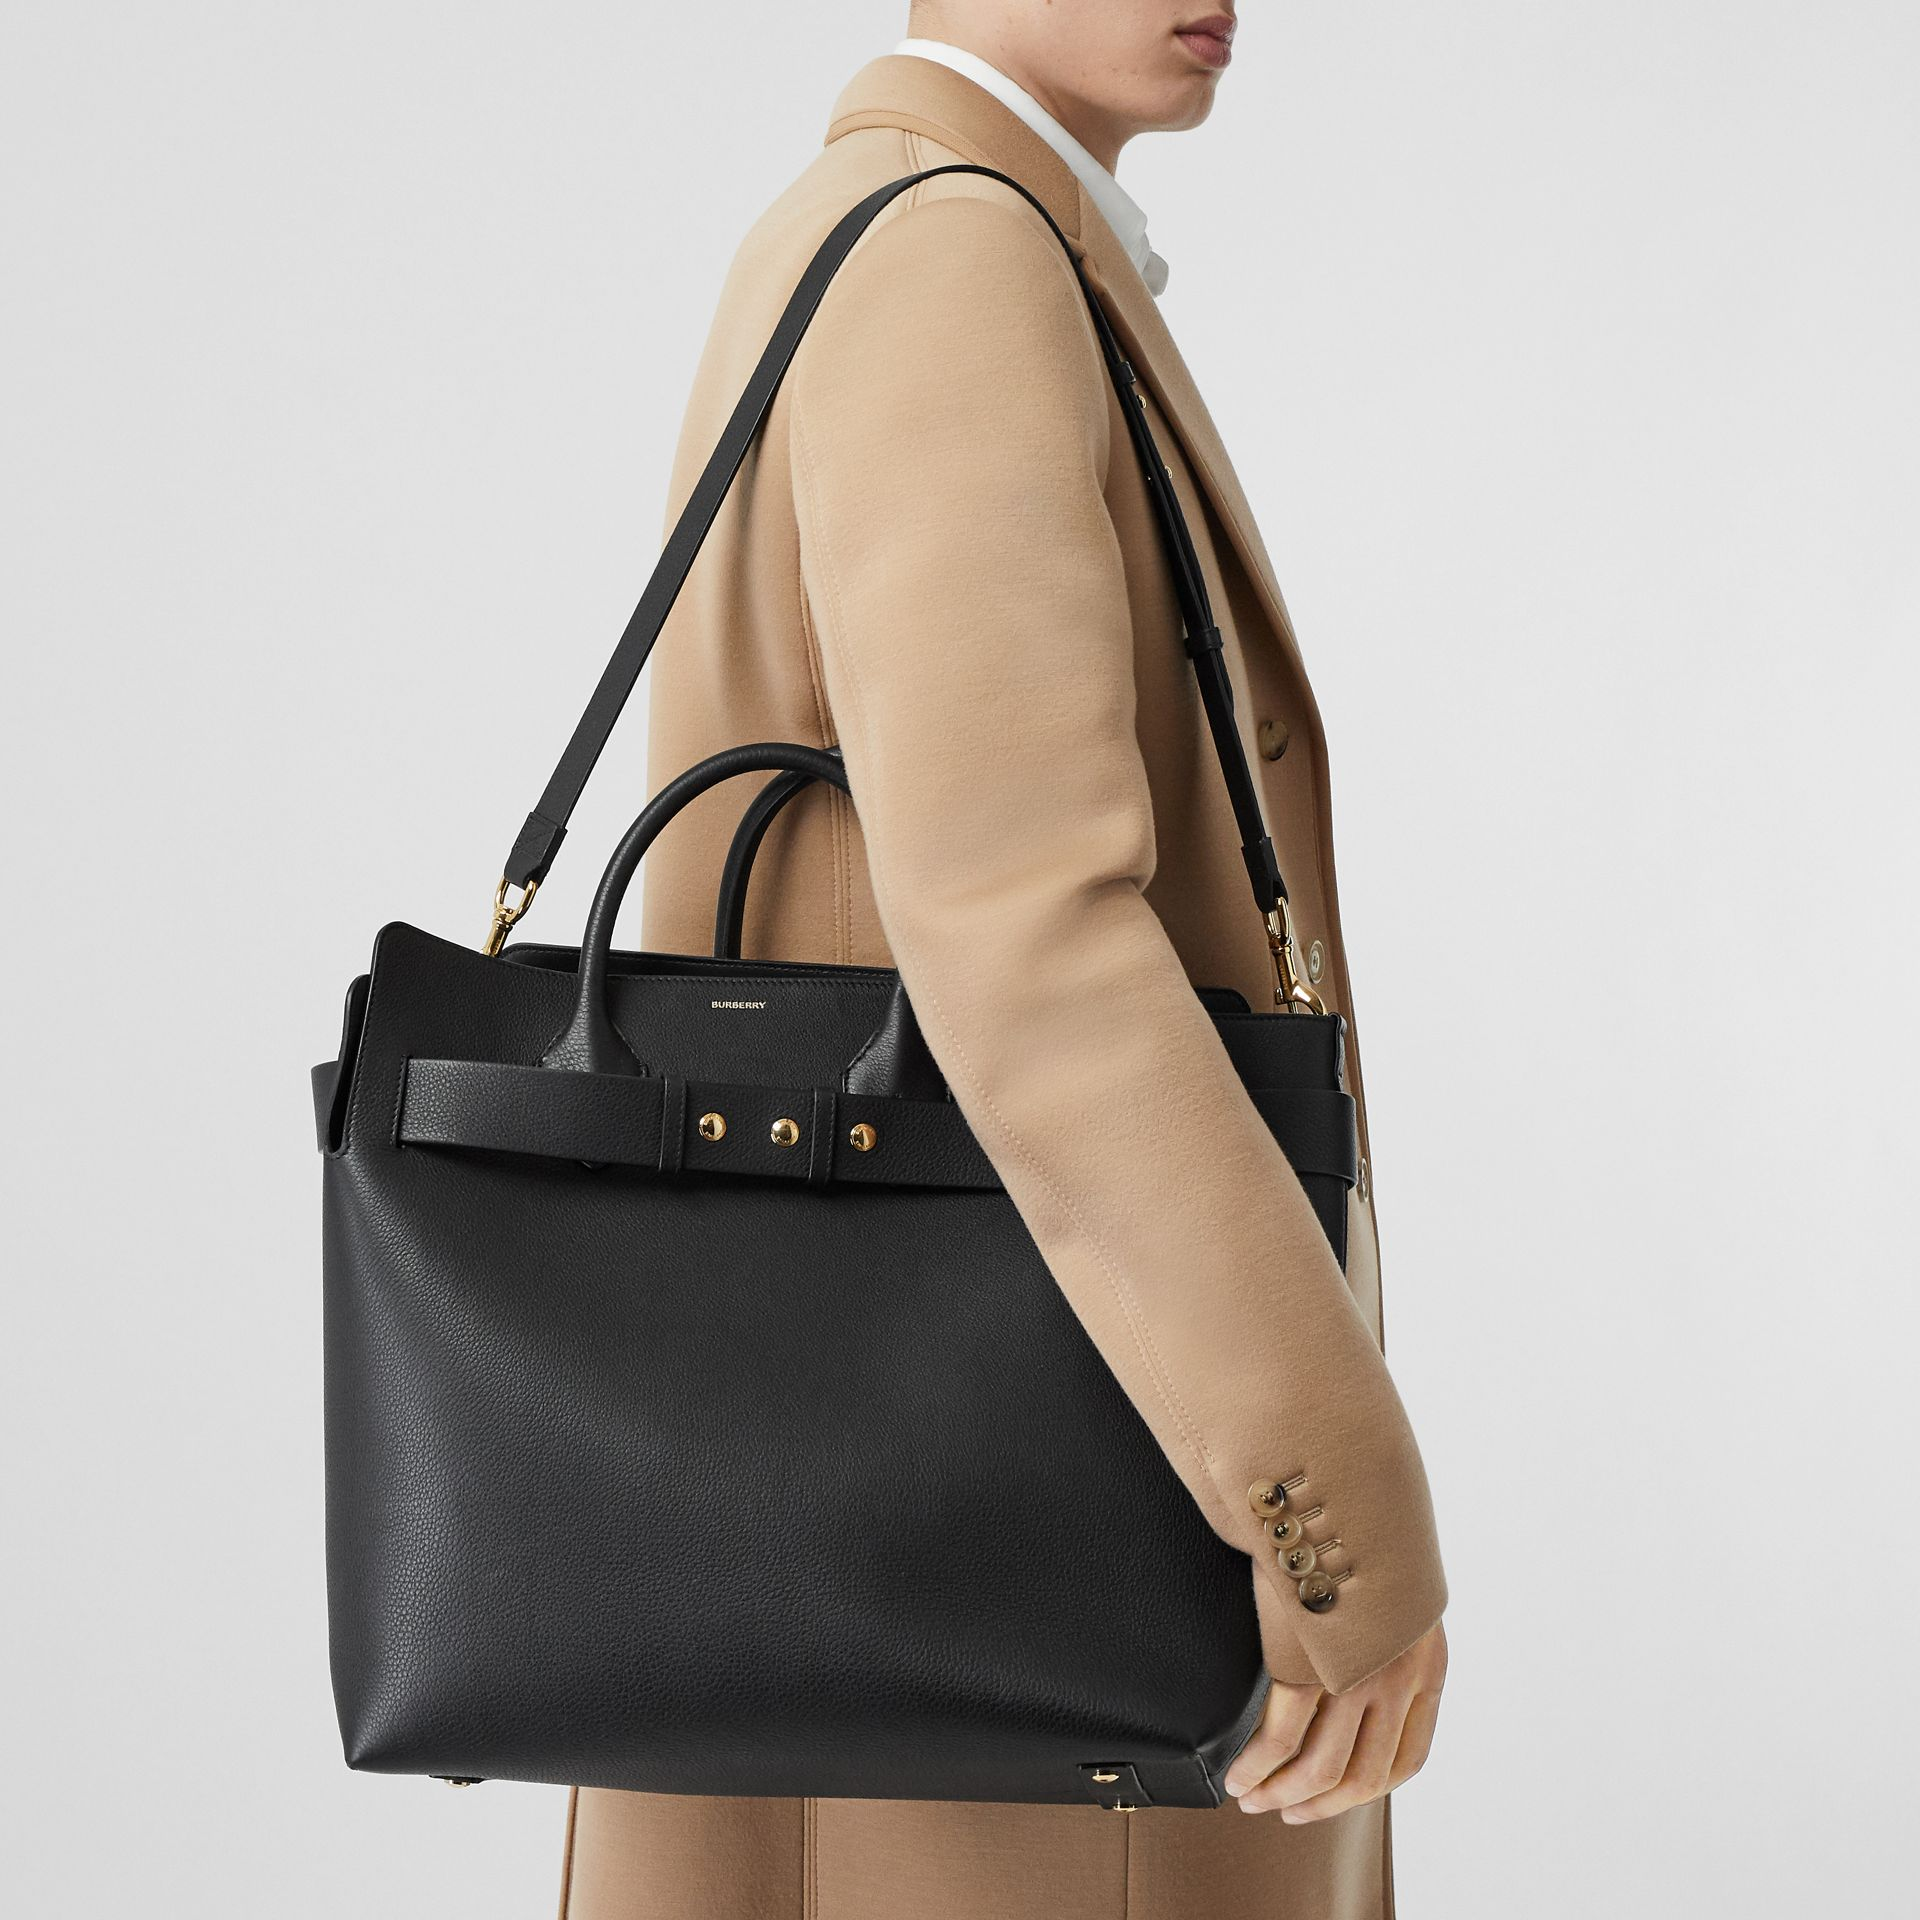 Borsa The Belt grande in pelle con tre borchie (Nero) - Donna | Burberry - immagine della galleria 3